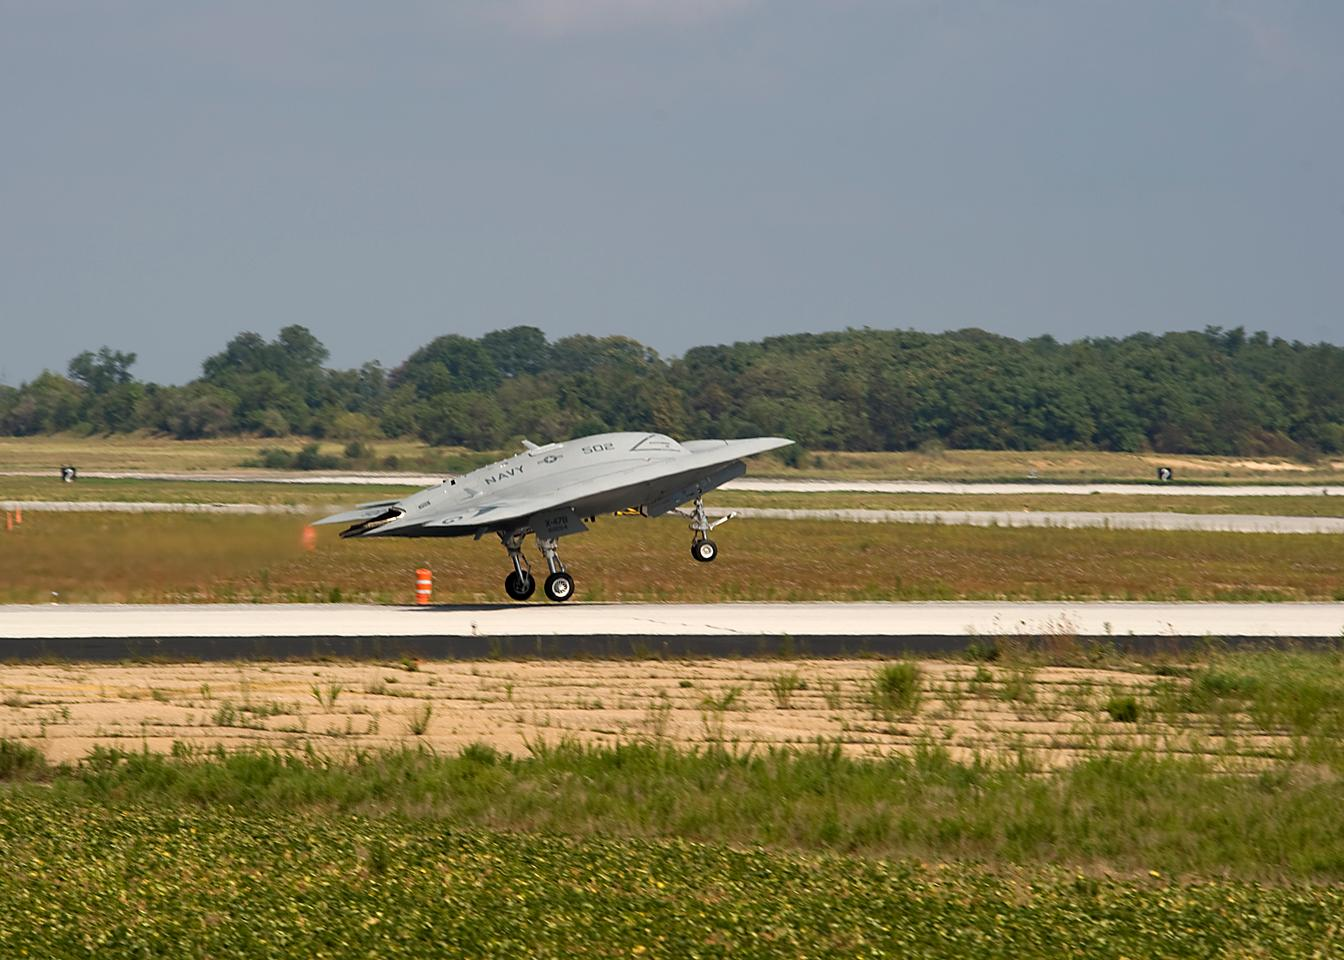 The X-47B launches rom Pax River for a 35-minute flight over the Chesapeake Bay on July 29 (Photo: U.S. Navy)